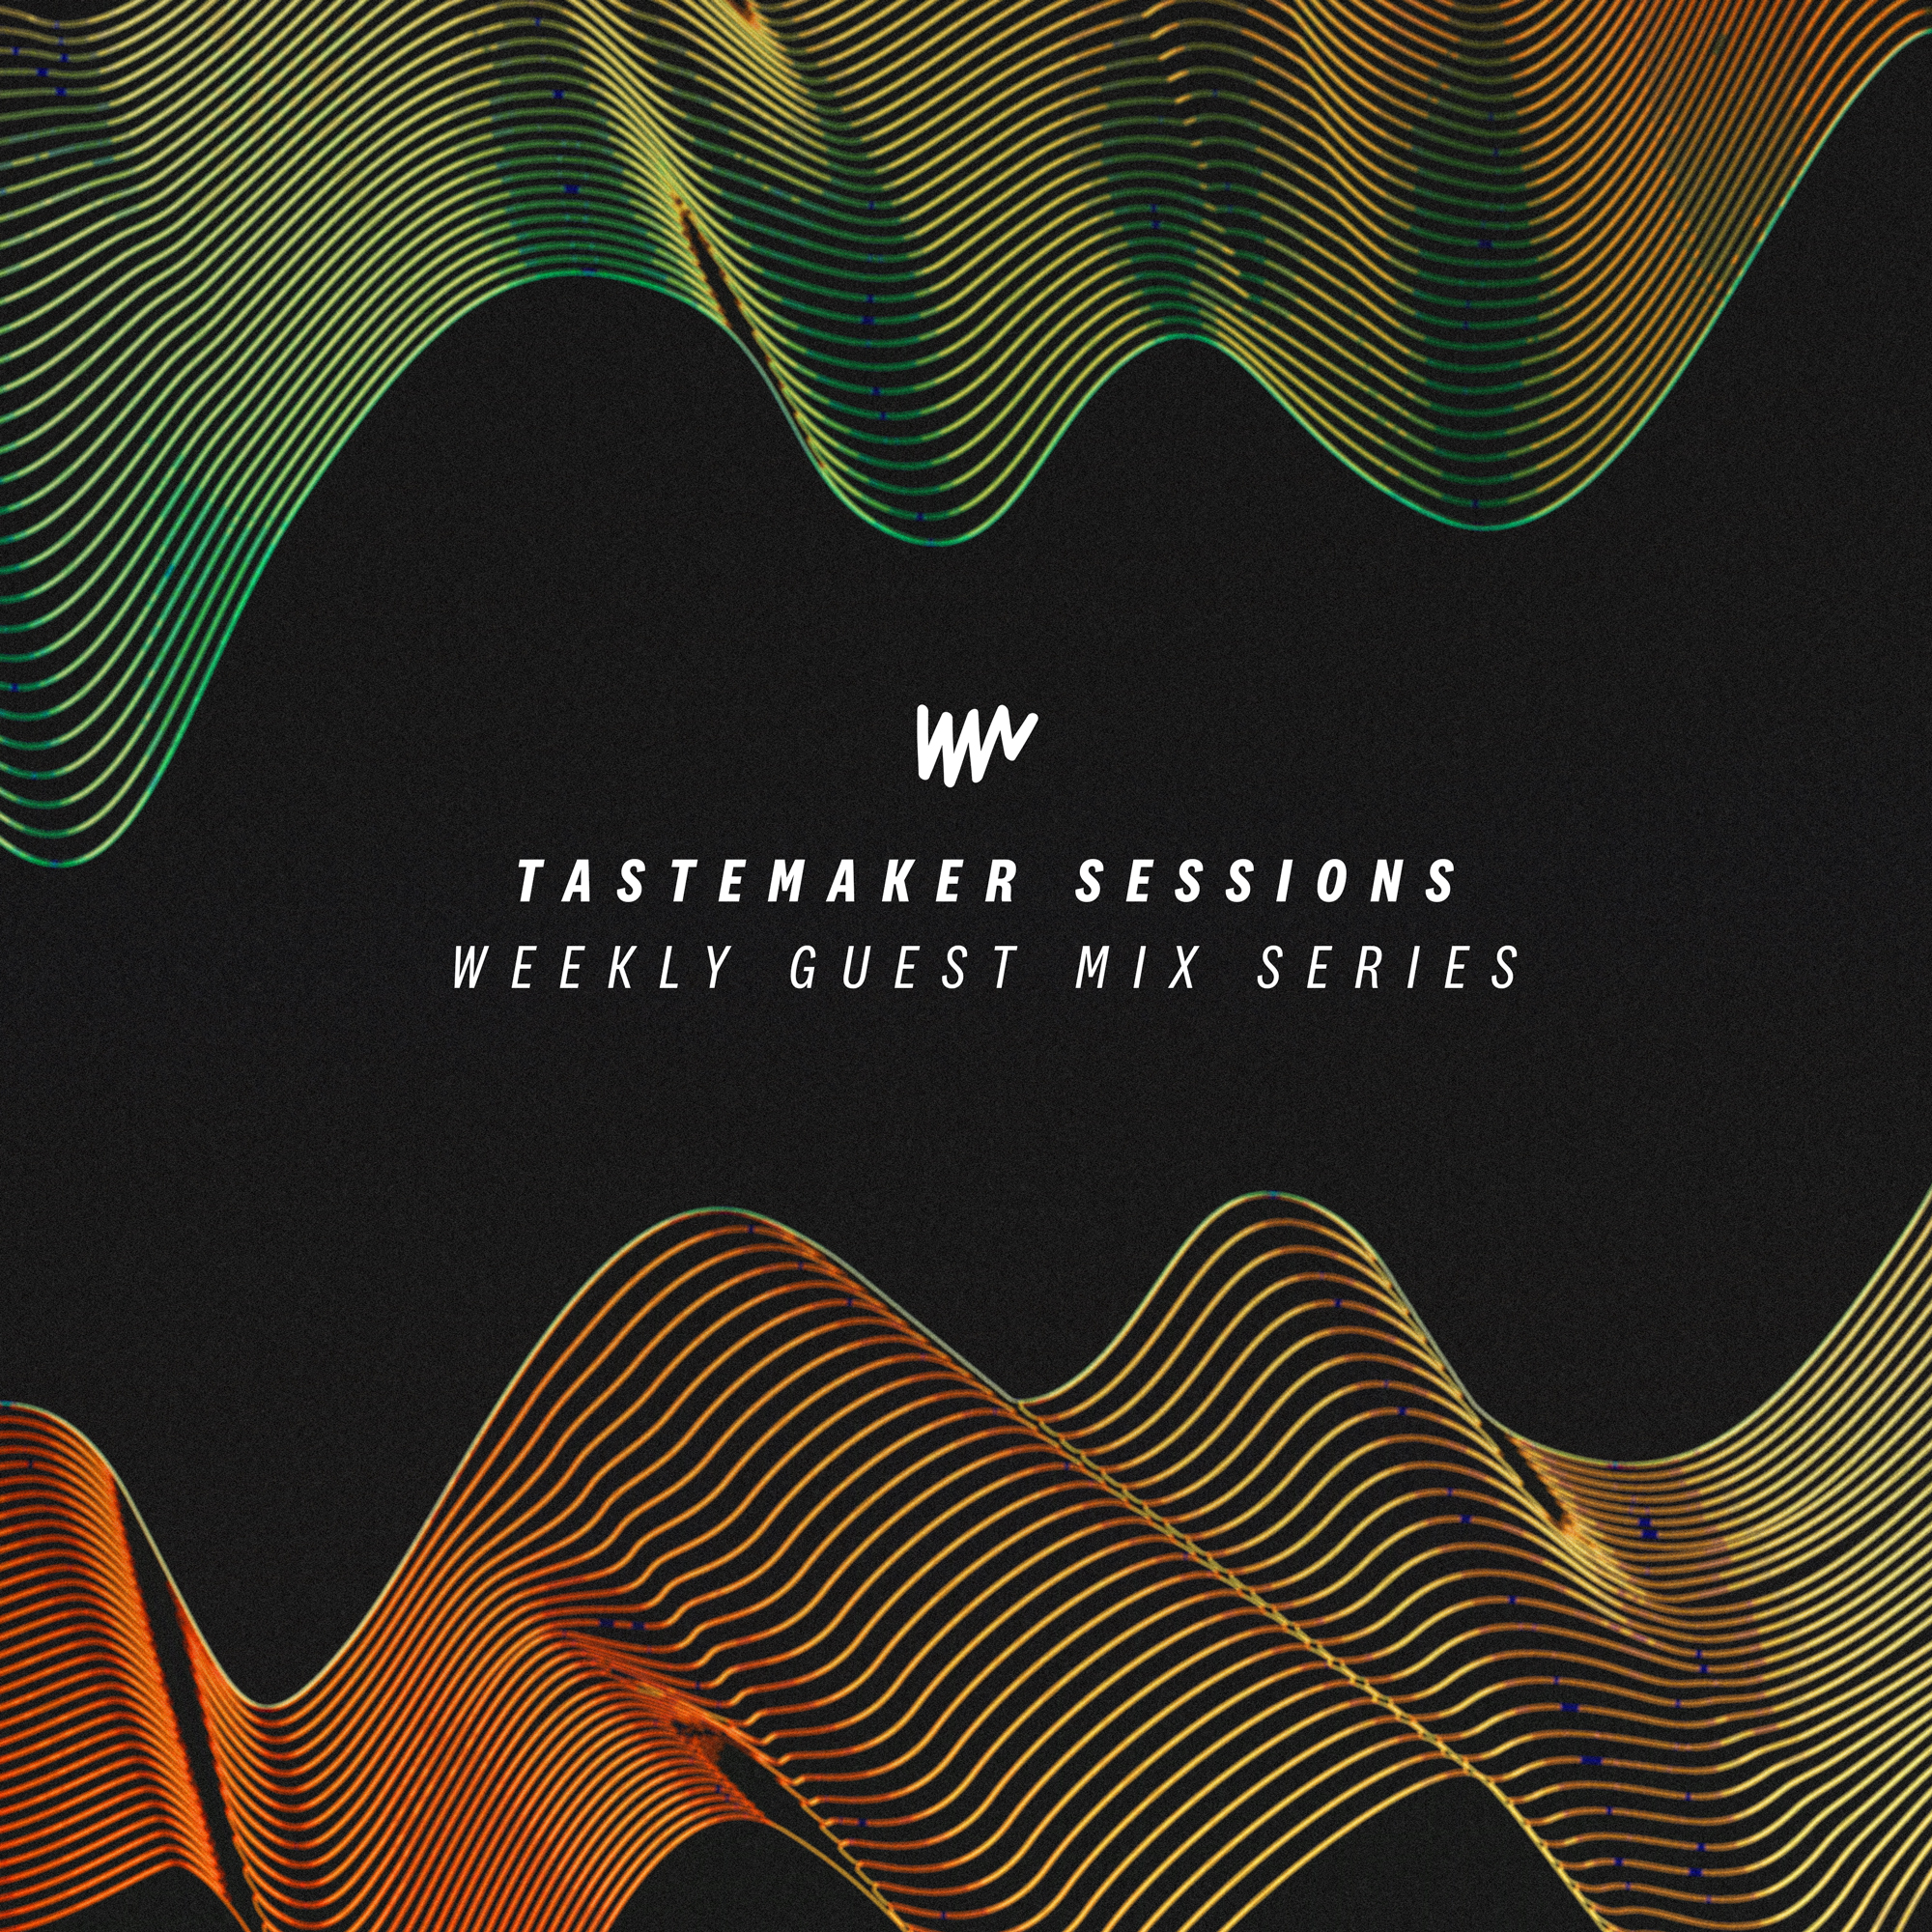 Tastemaker Sessions – Weekly Guest Mix